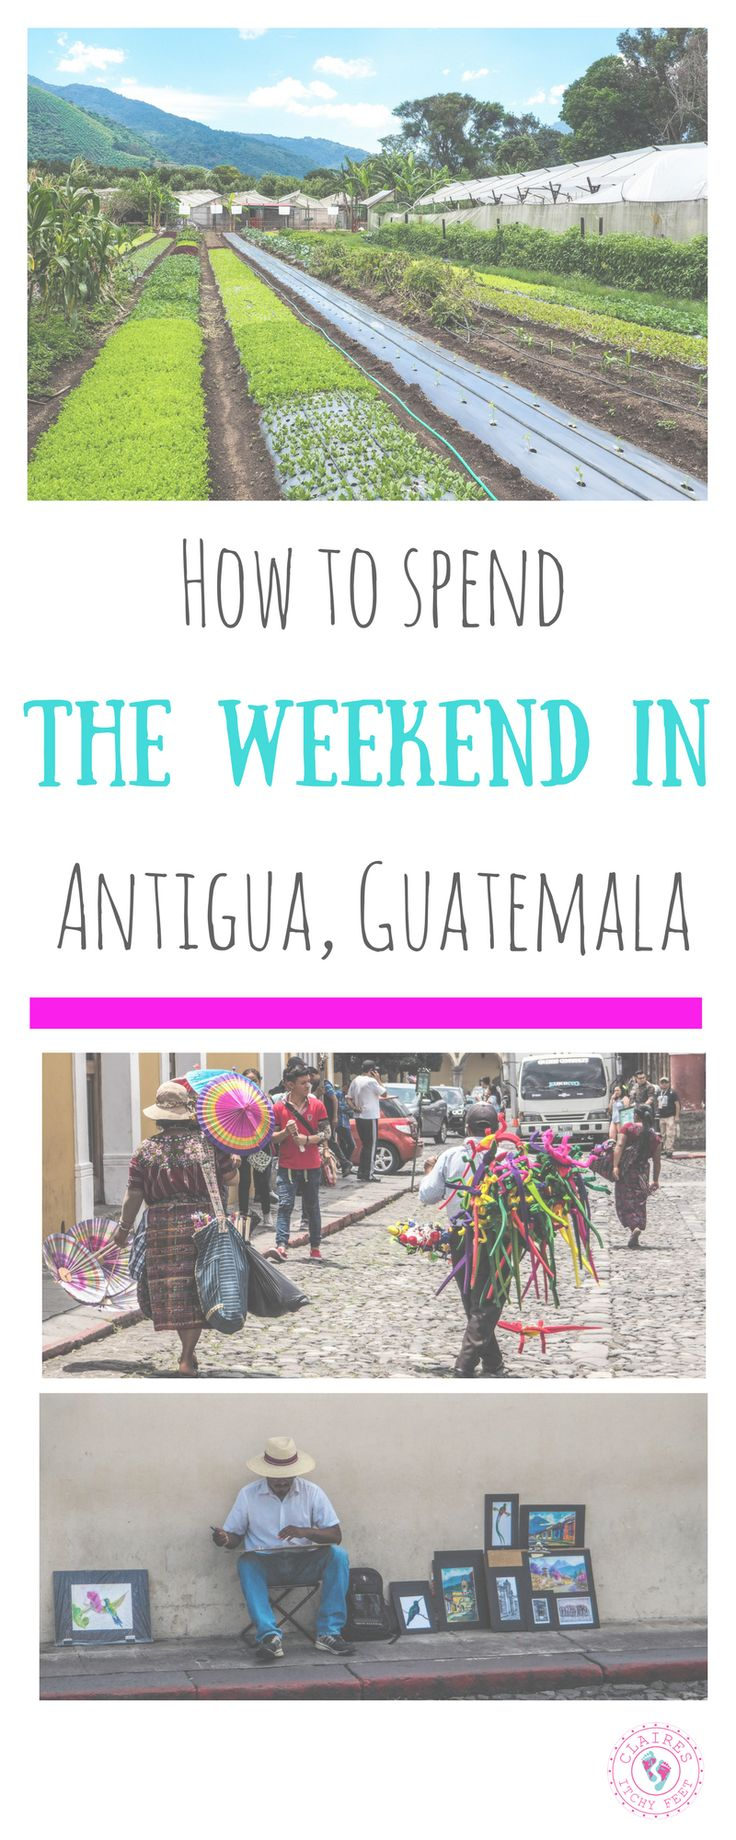 Planning a weekend trip to Antigua Guatemala? Weekends are the best time to explore Antigua as there is so much going on.